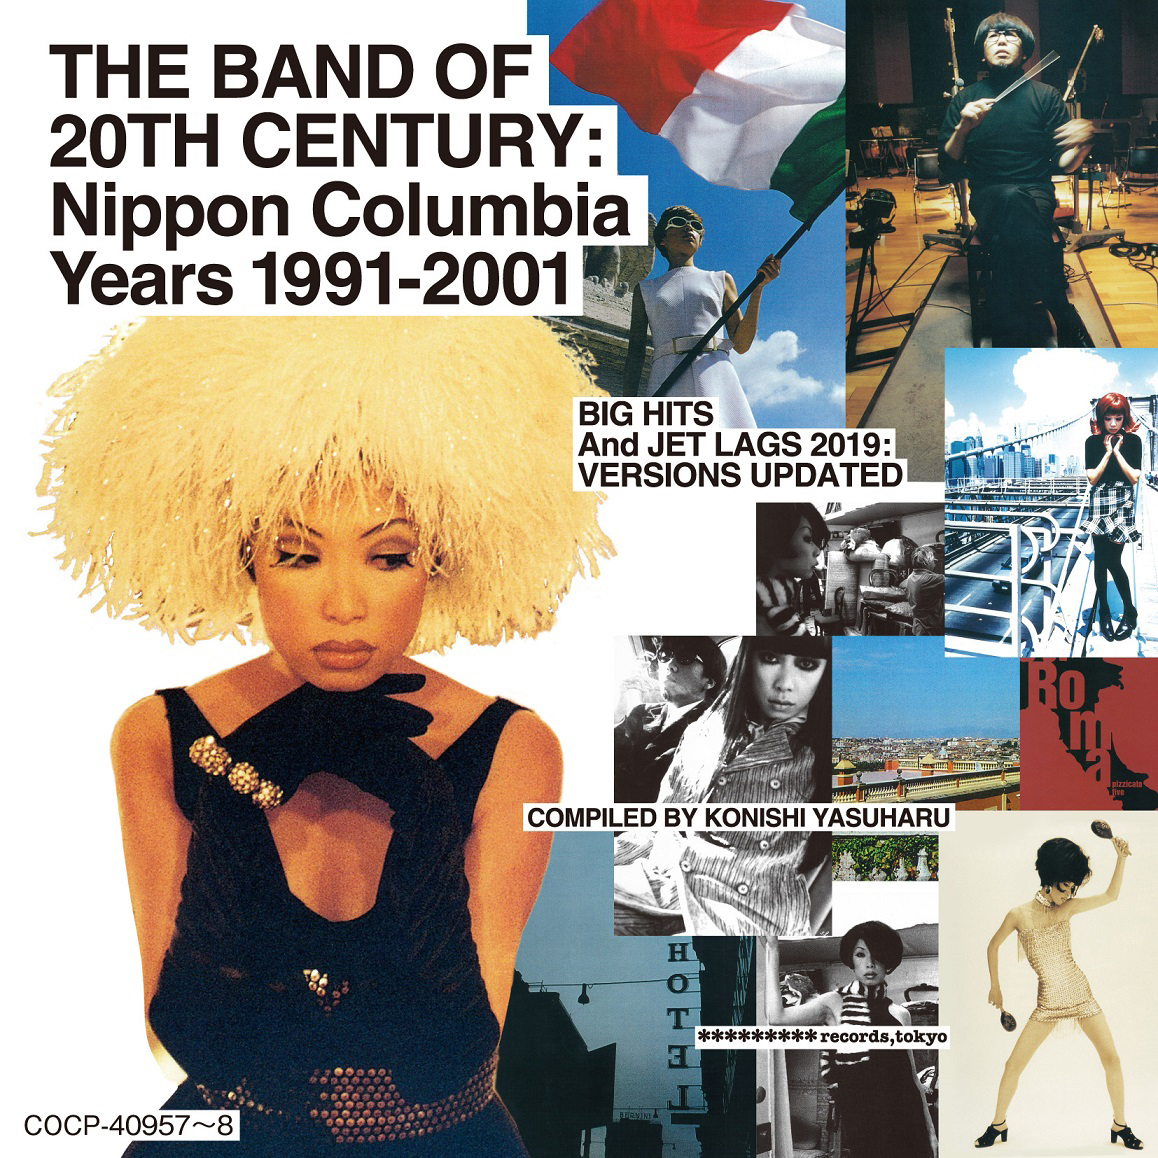 Art Director :信藤三雄 「THE BAND OF 20TH CENTURY:Nippon Columbia Years 1991-2001」